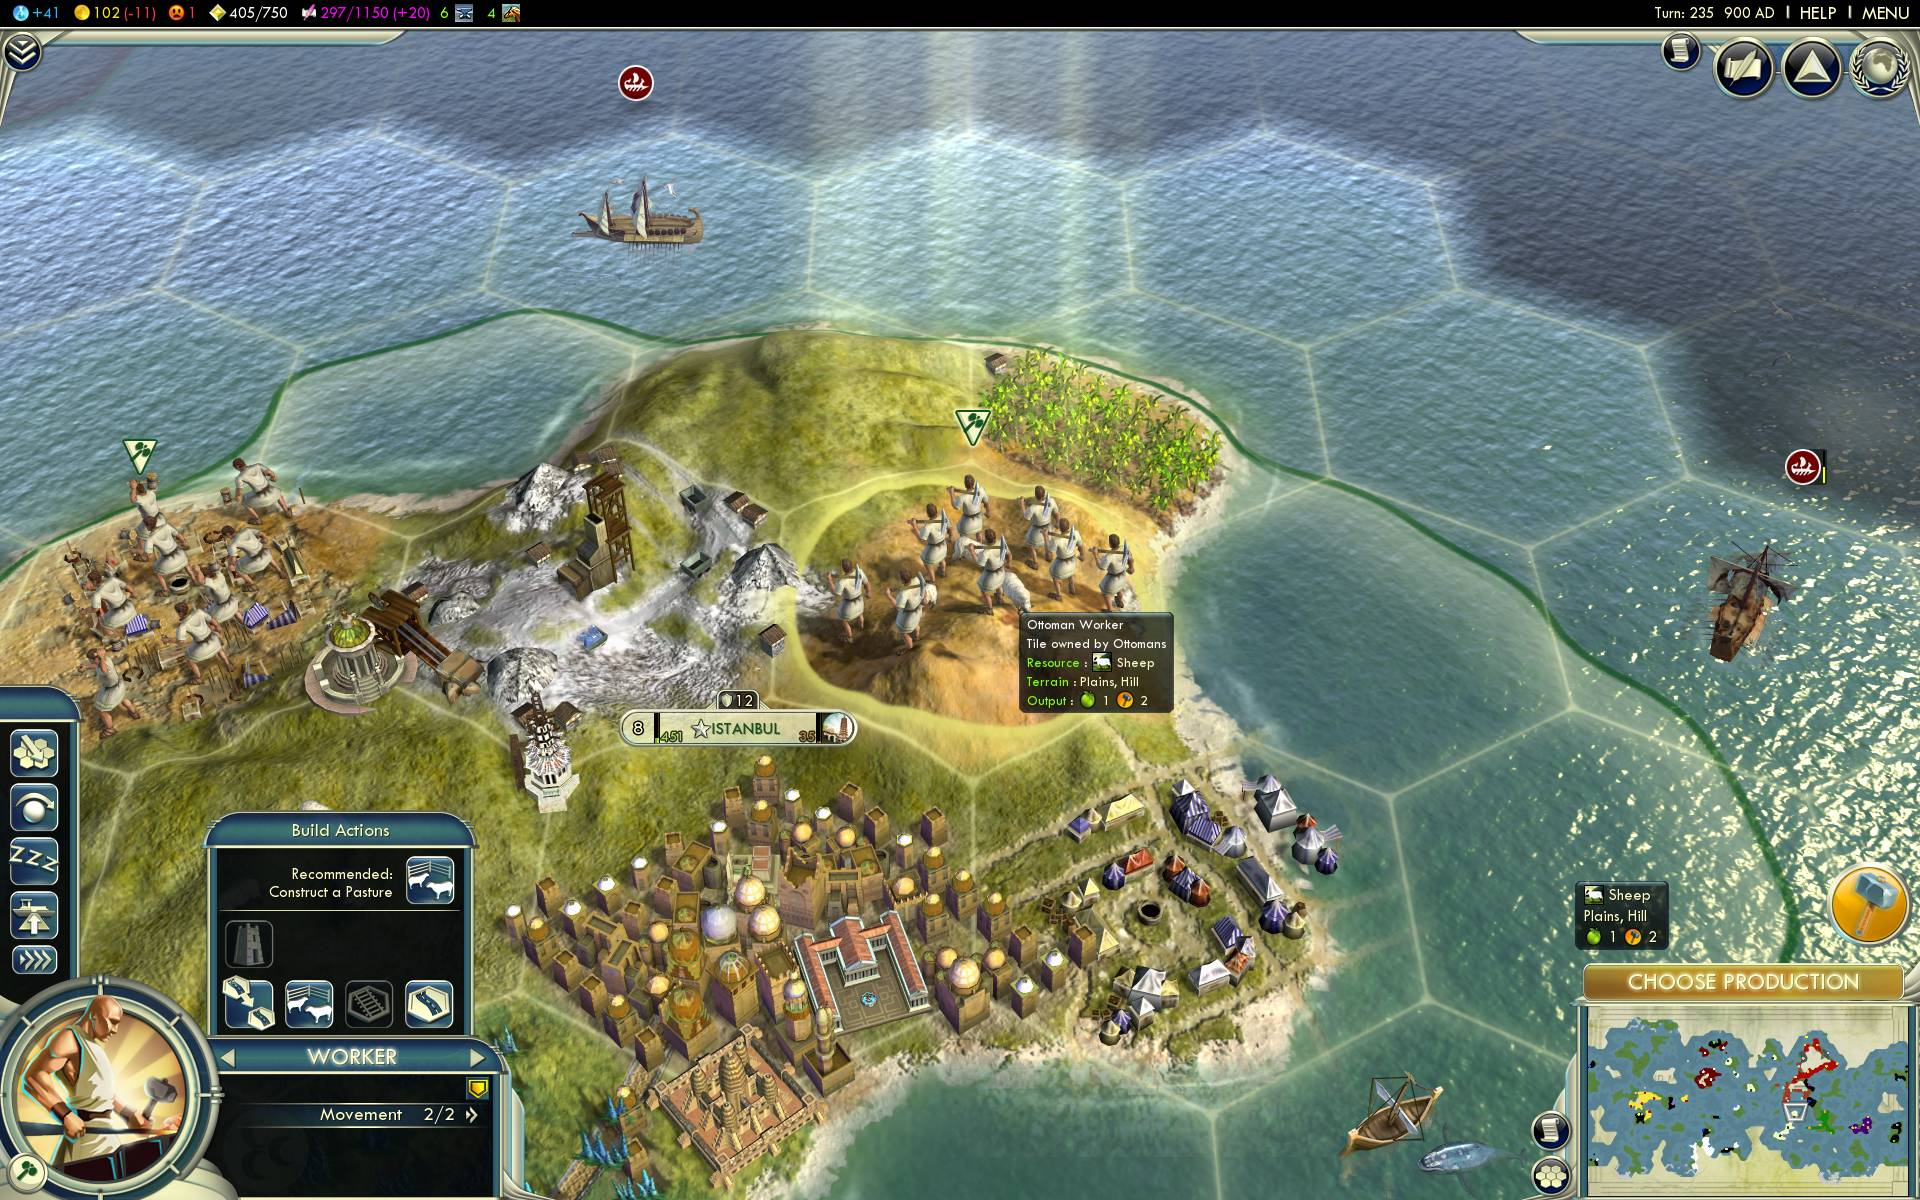 The Most Dangerously Addictive Games Of All Time Sheep on hills Civ5